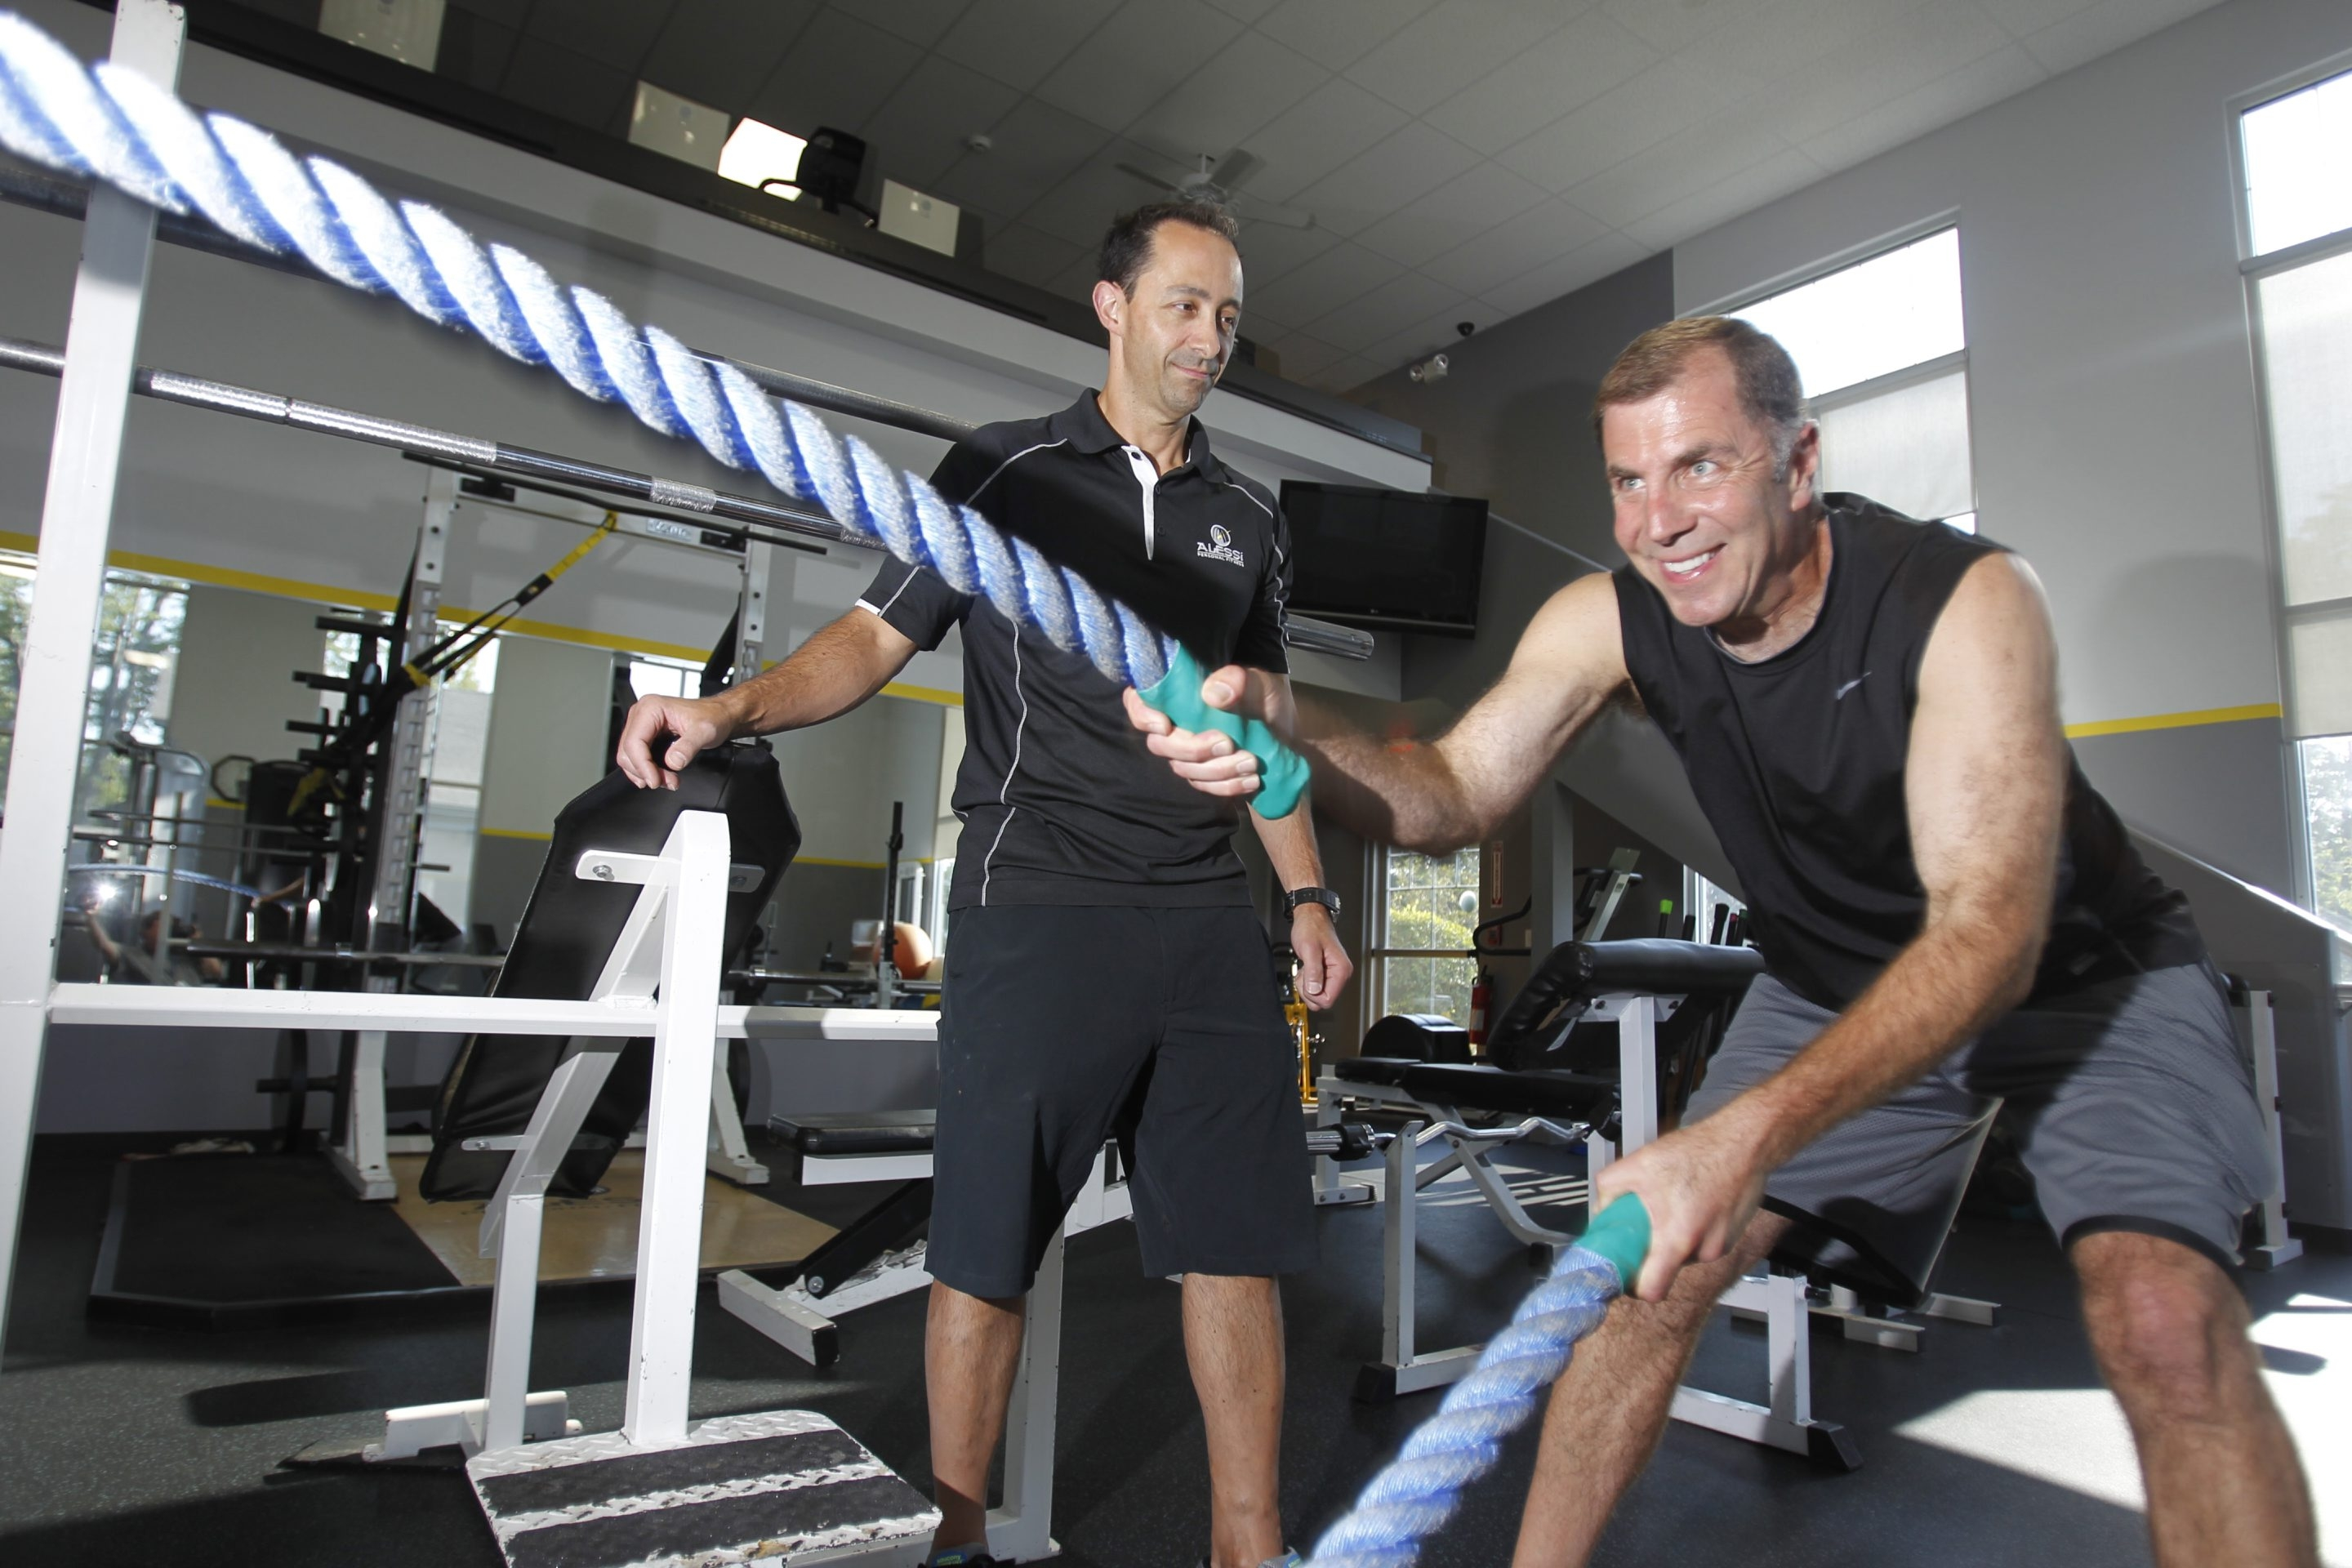 Drew Cerza has been working out with Derek Alessi at Alessi Fitness in Clarence as part of his new strategy for healthier living.